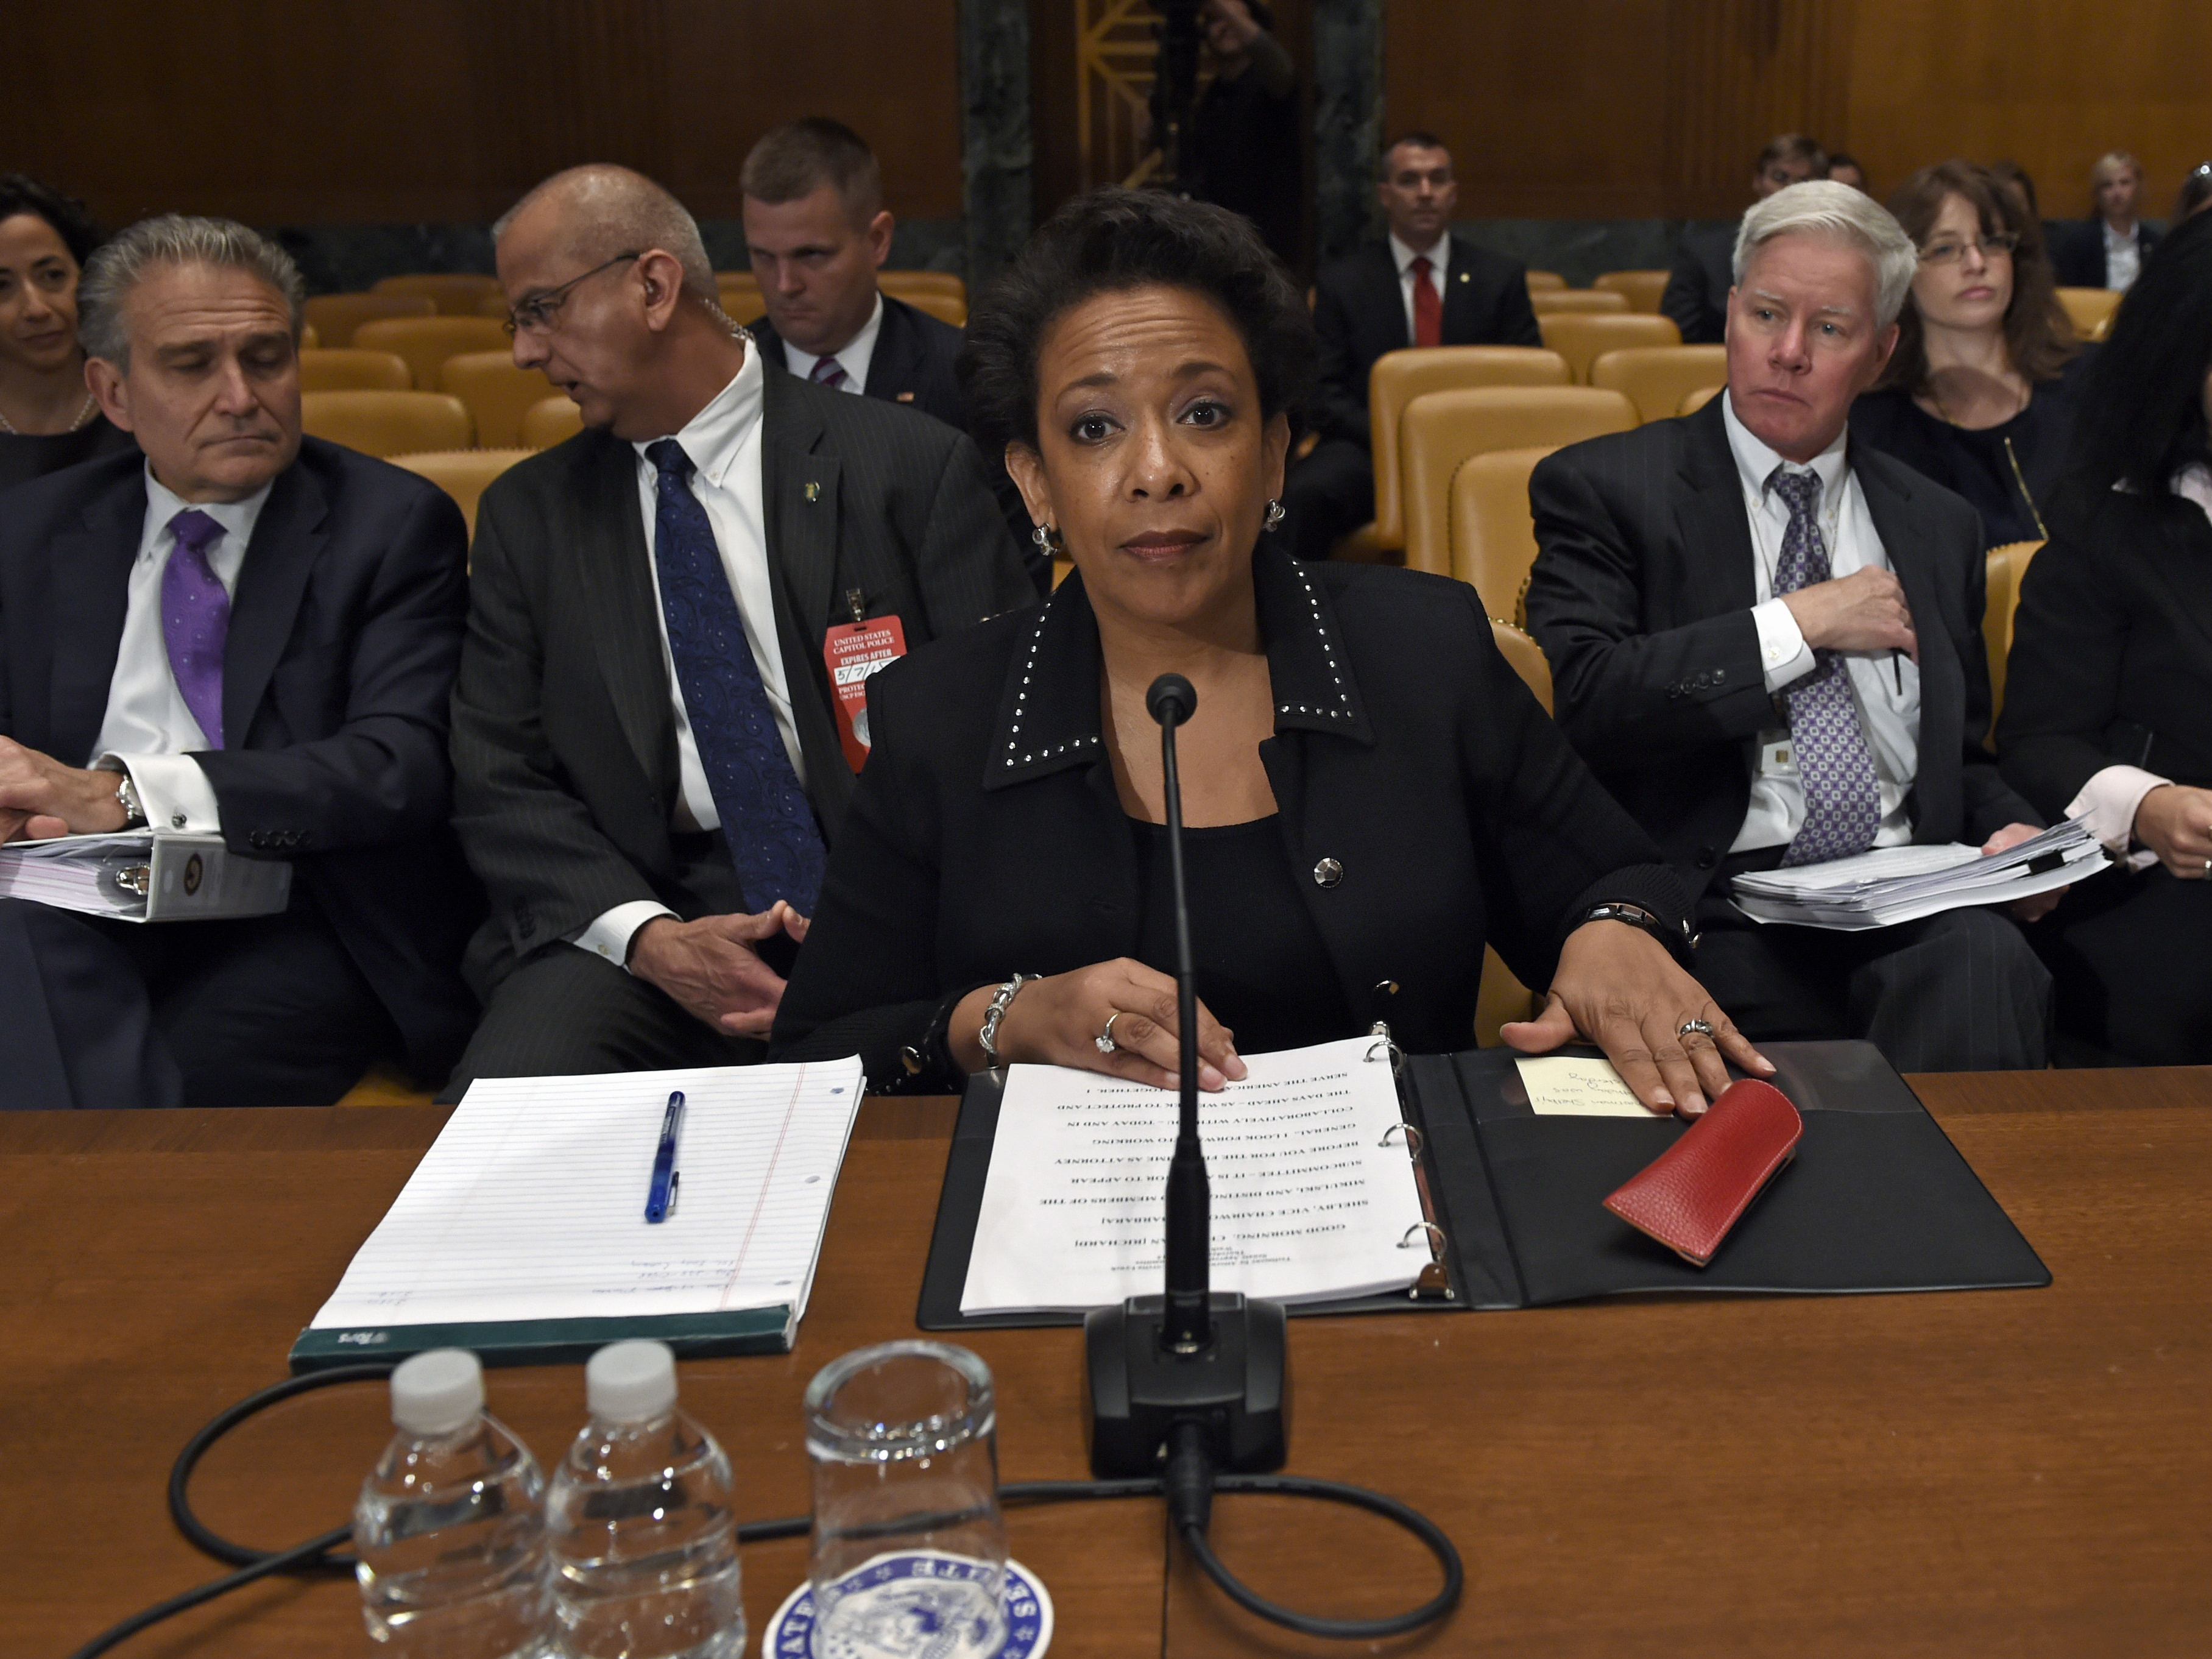 Attorney General Loretta Lynch prepares to testify Thursday at a budget hearing on Capitol Hill in Washington. Susan Walsh/AP